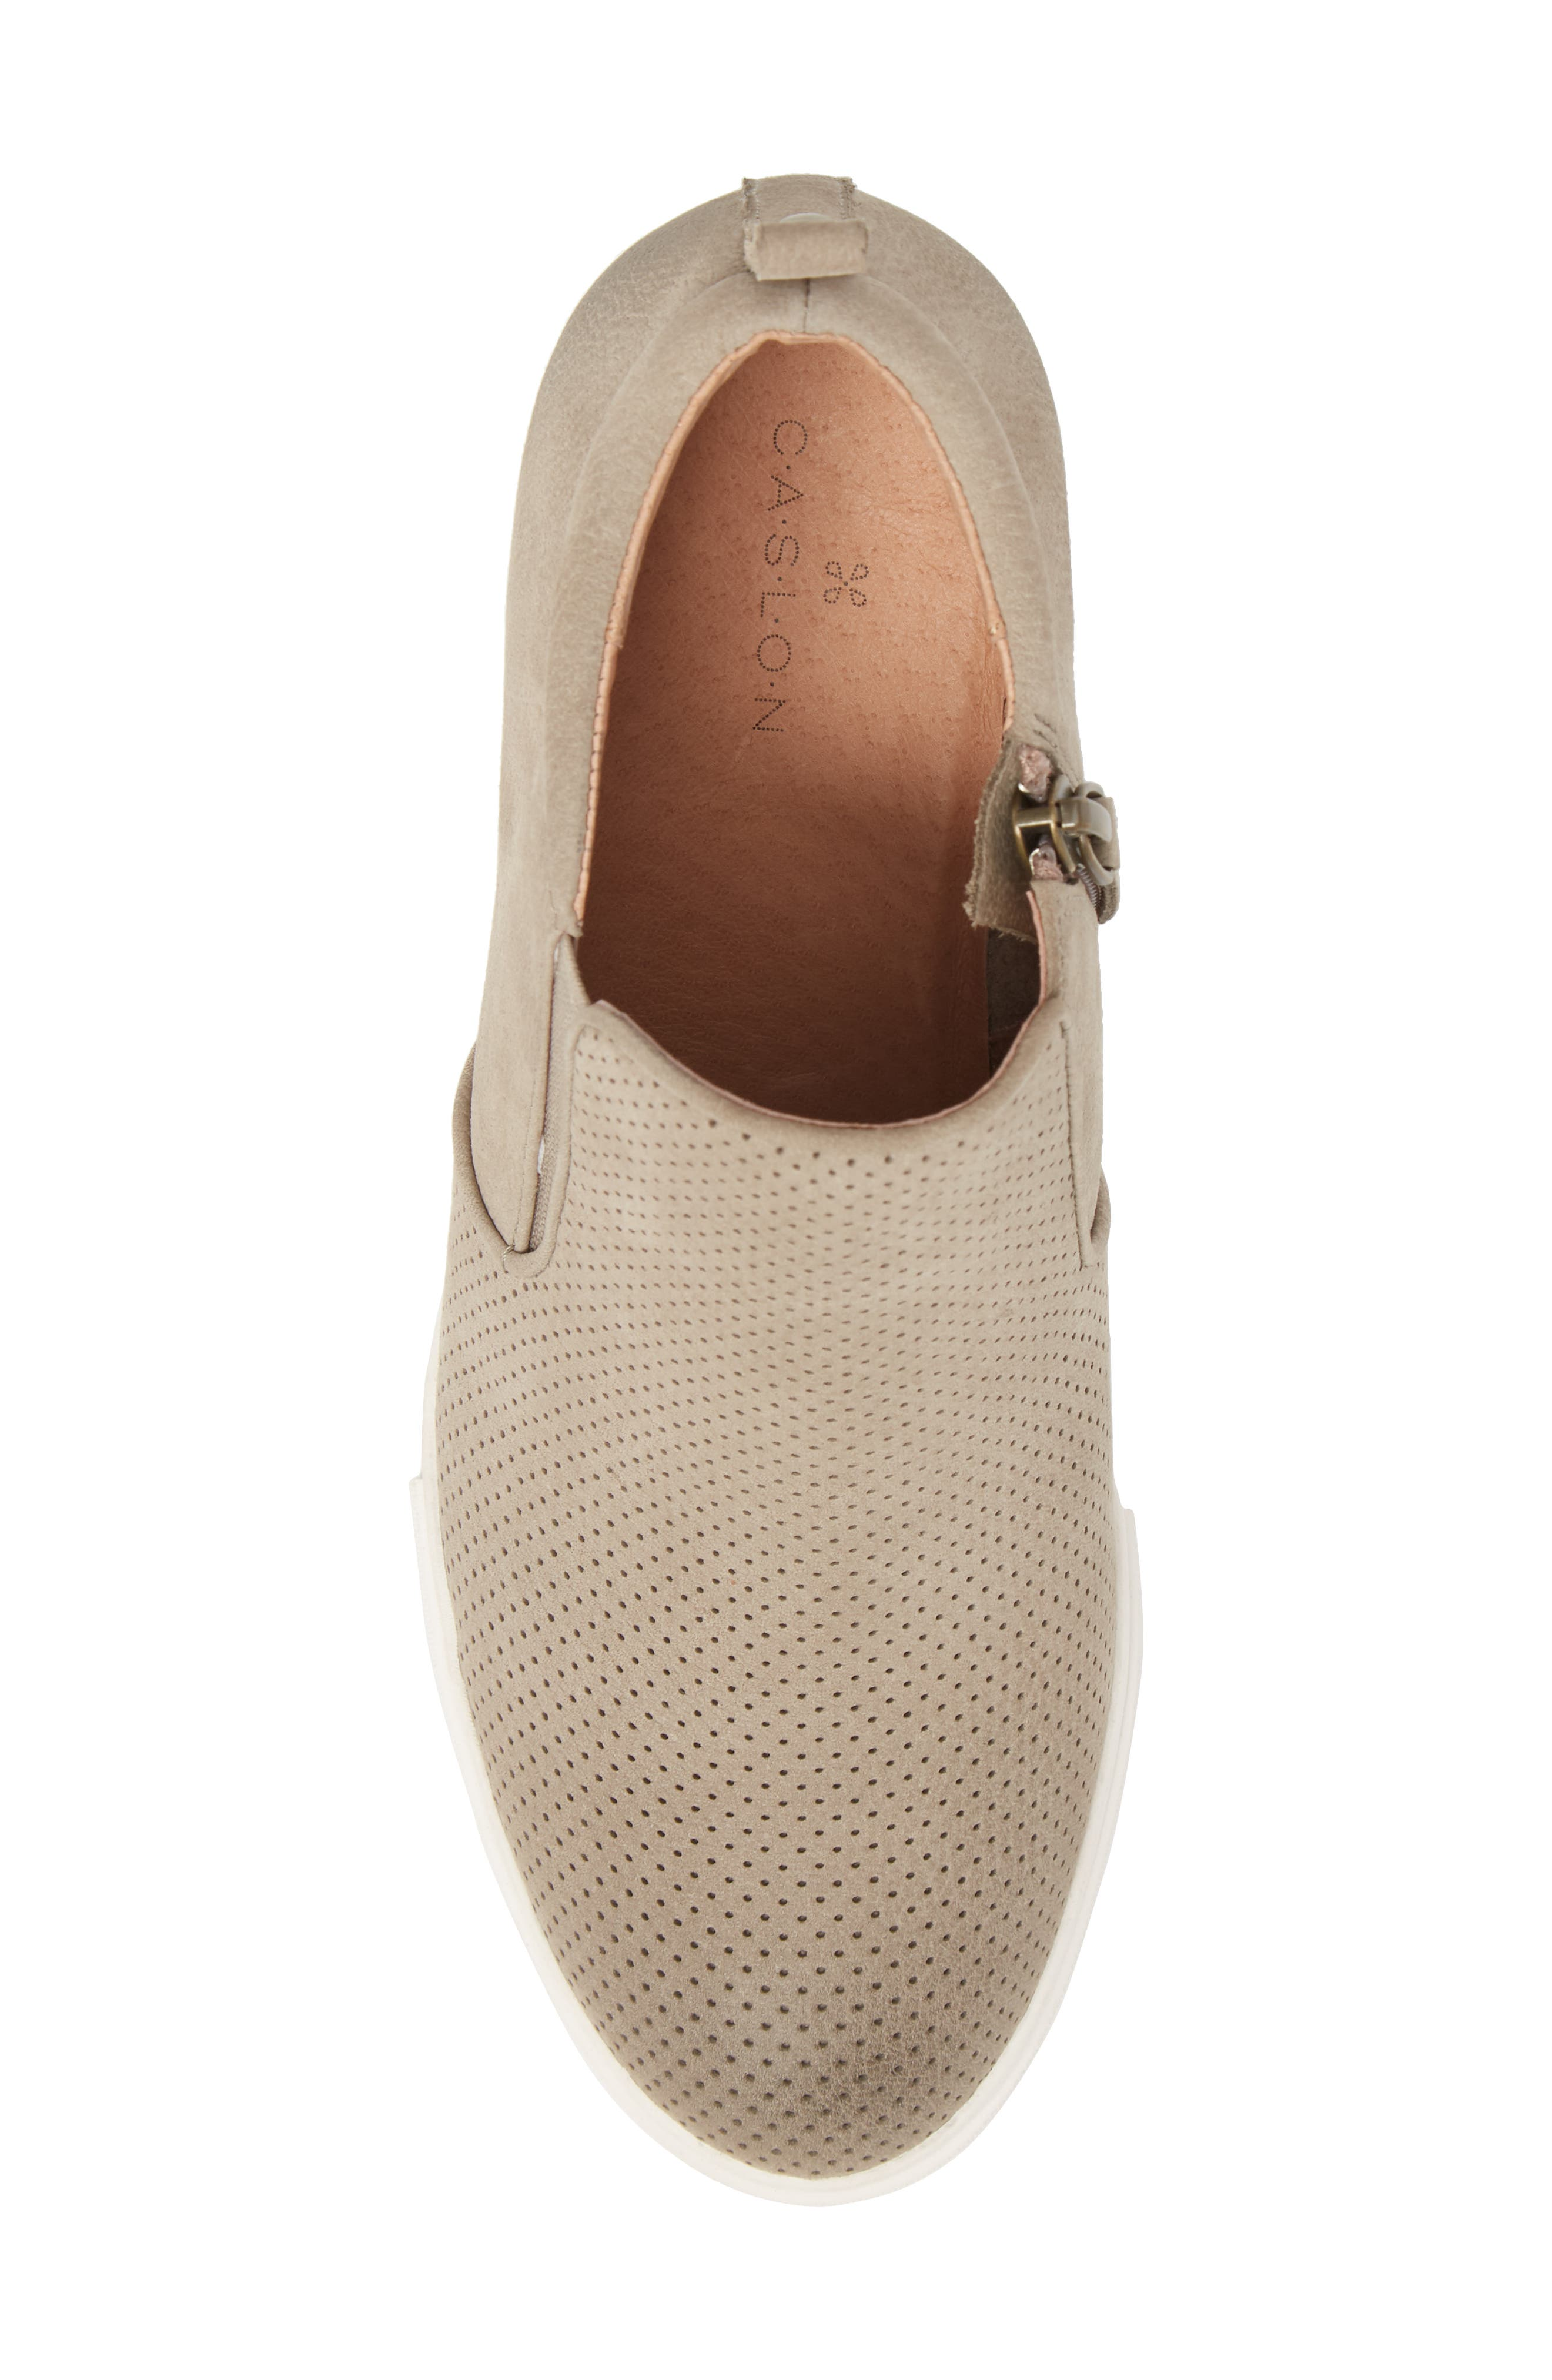 Aiden Wedge Sneaker,                             Alternate thumbnail 5, color,                             Taupe Perforated Leather